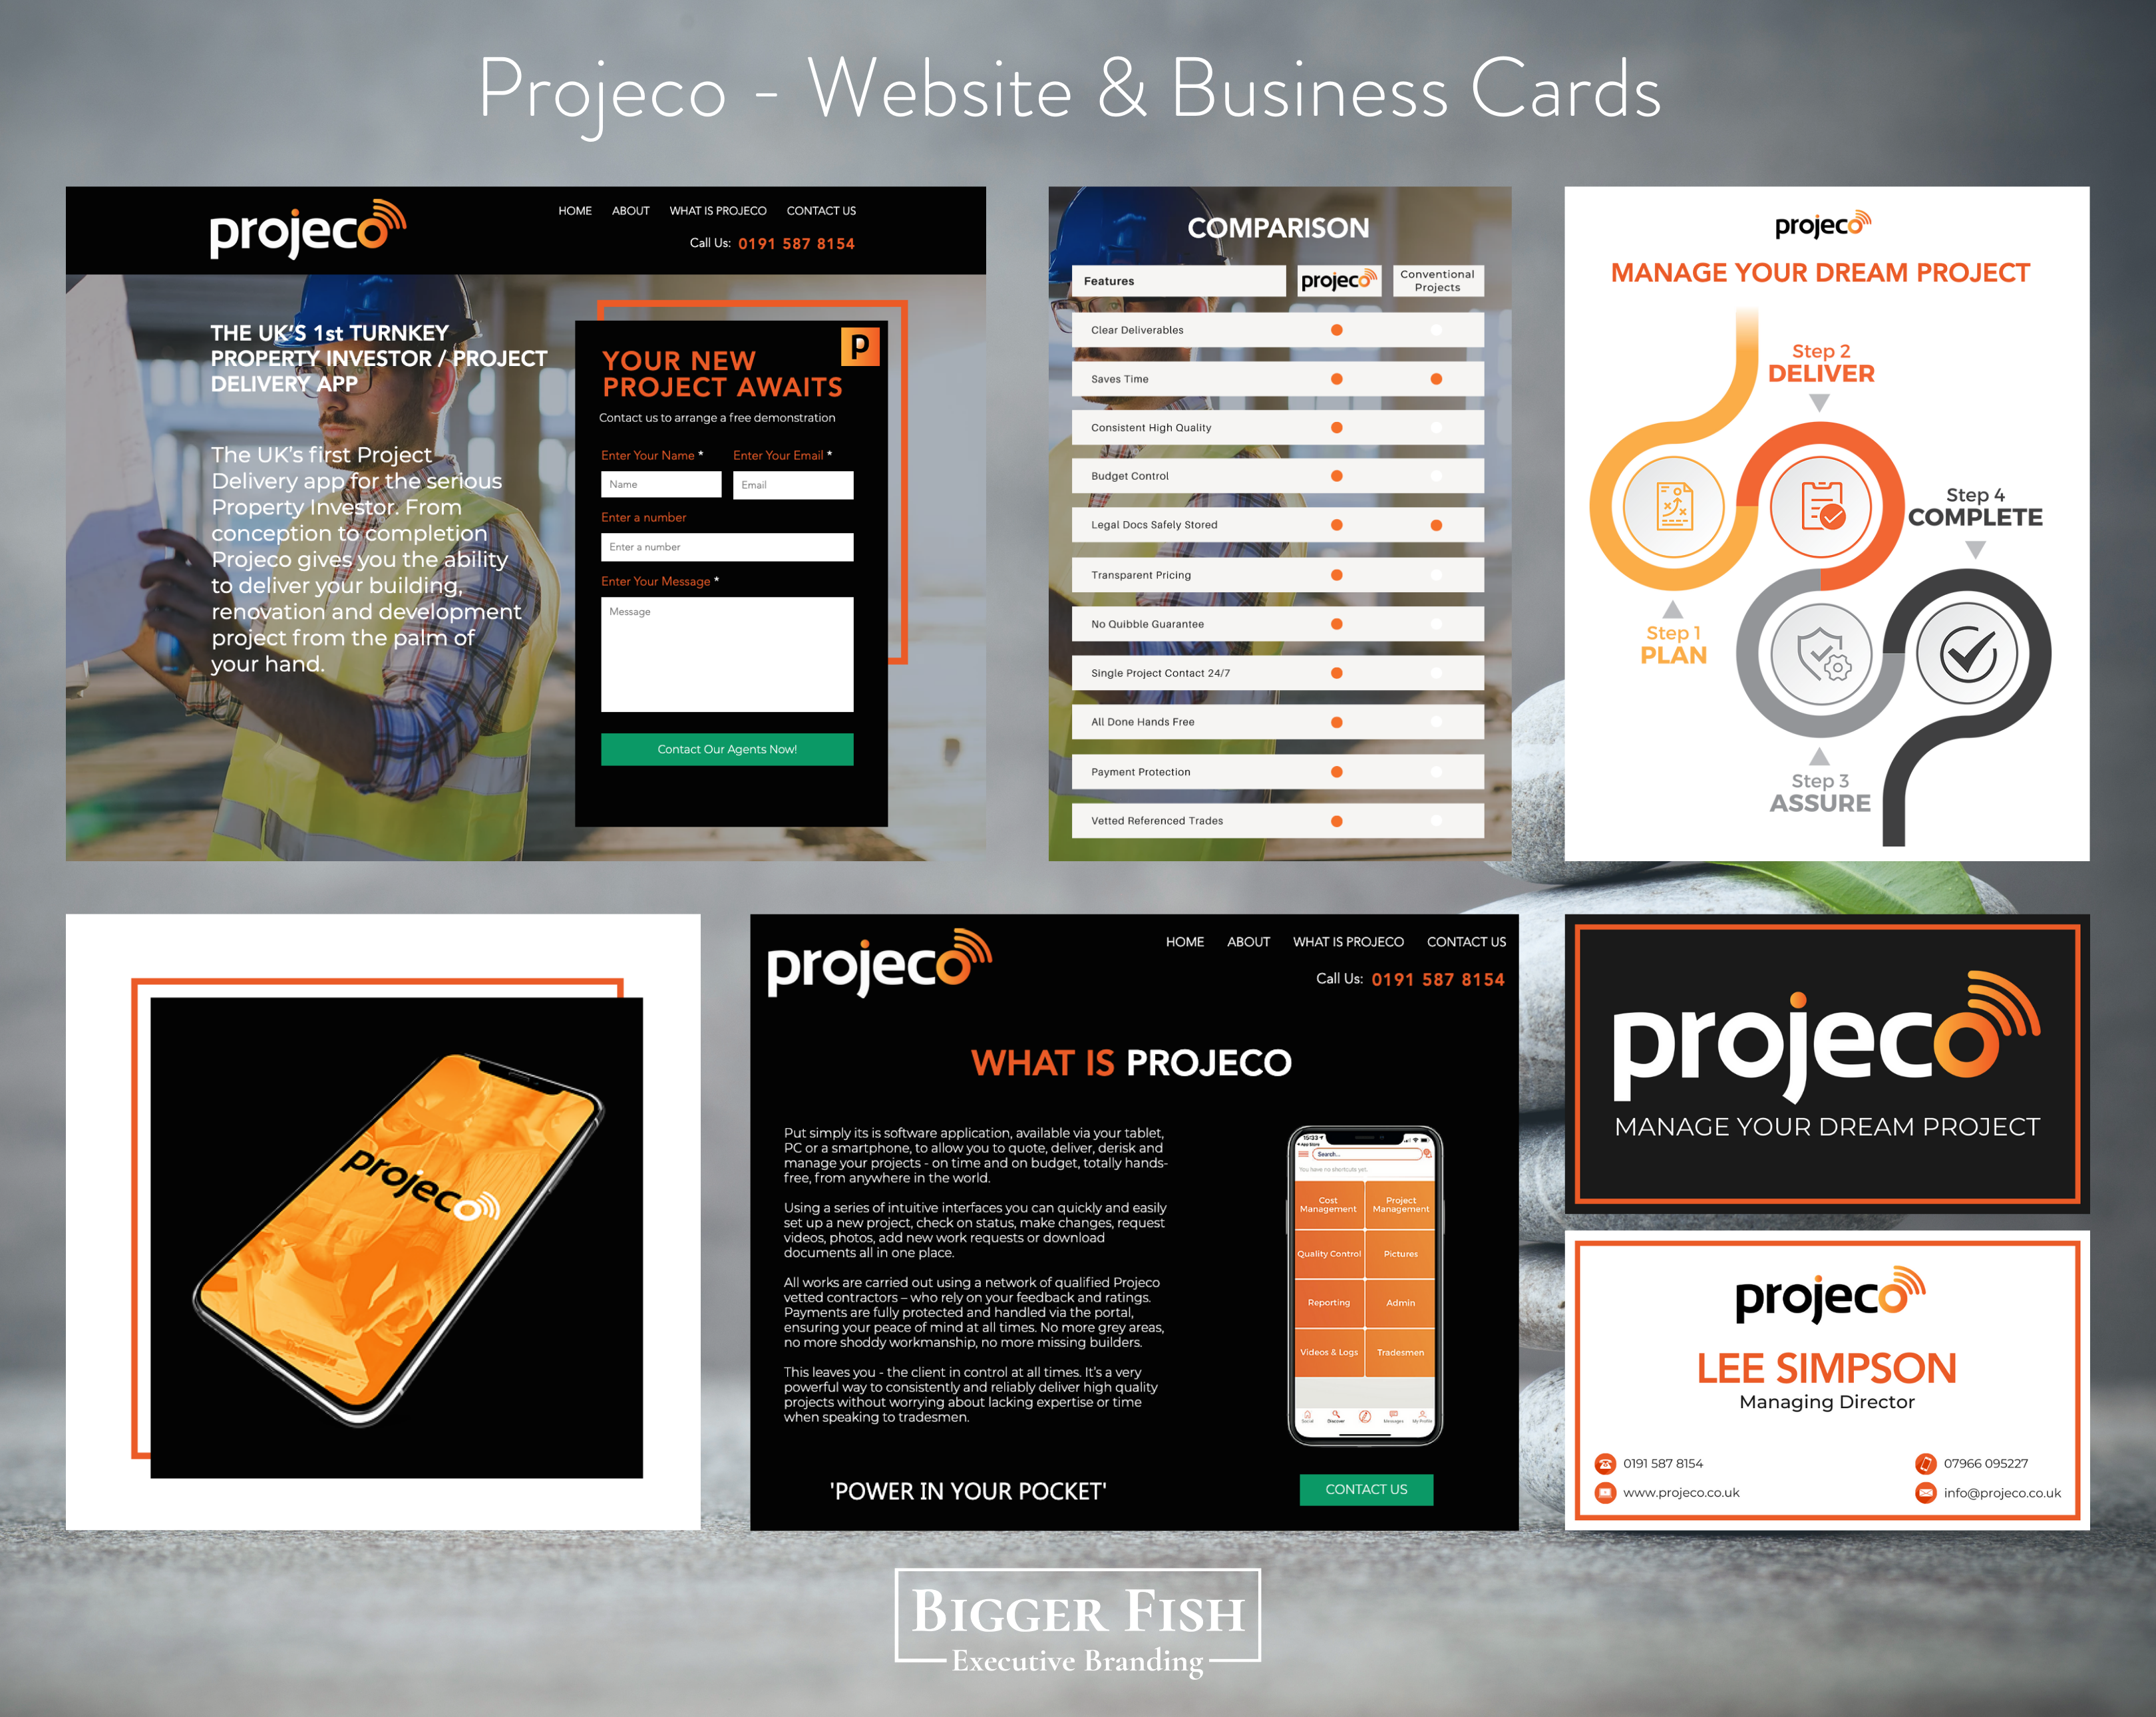 Projeco - Website & Business Cards